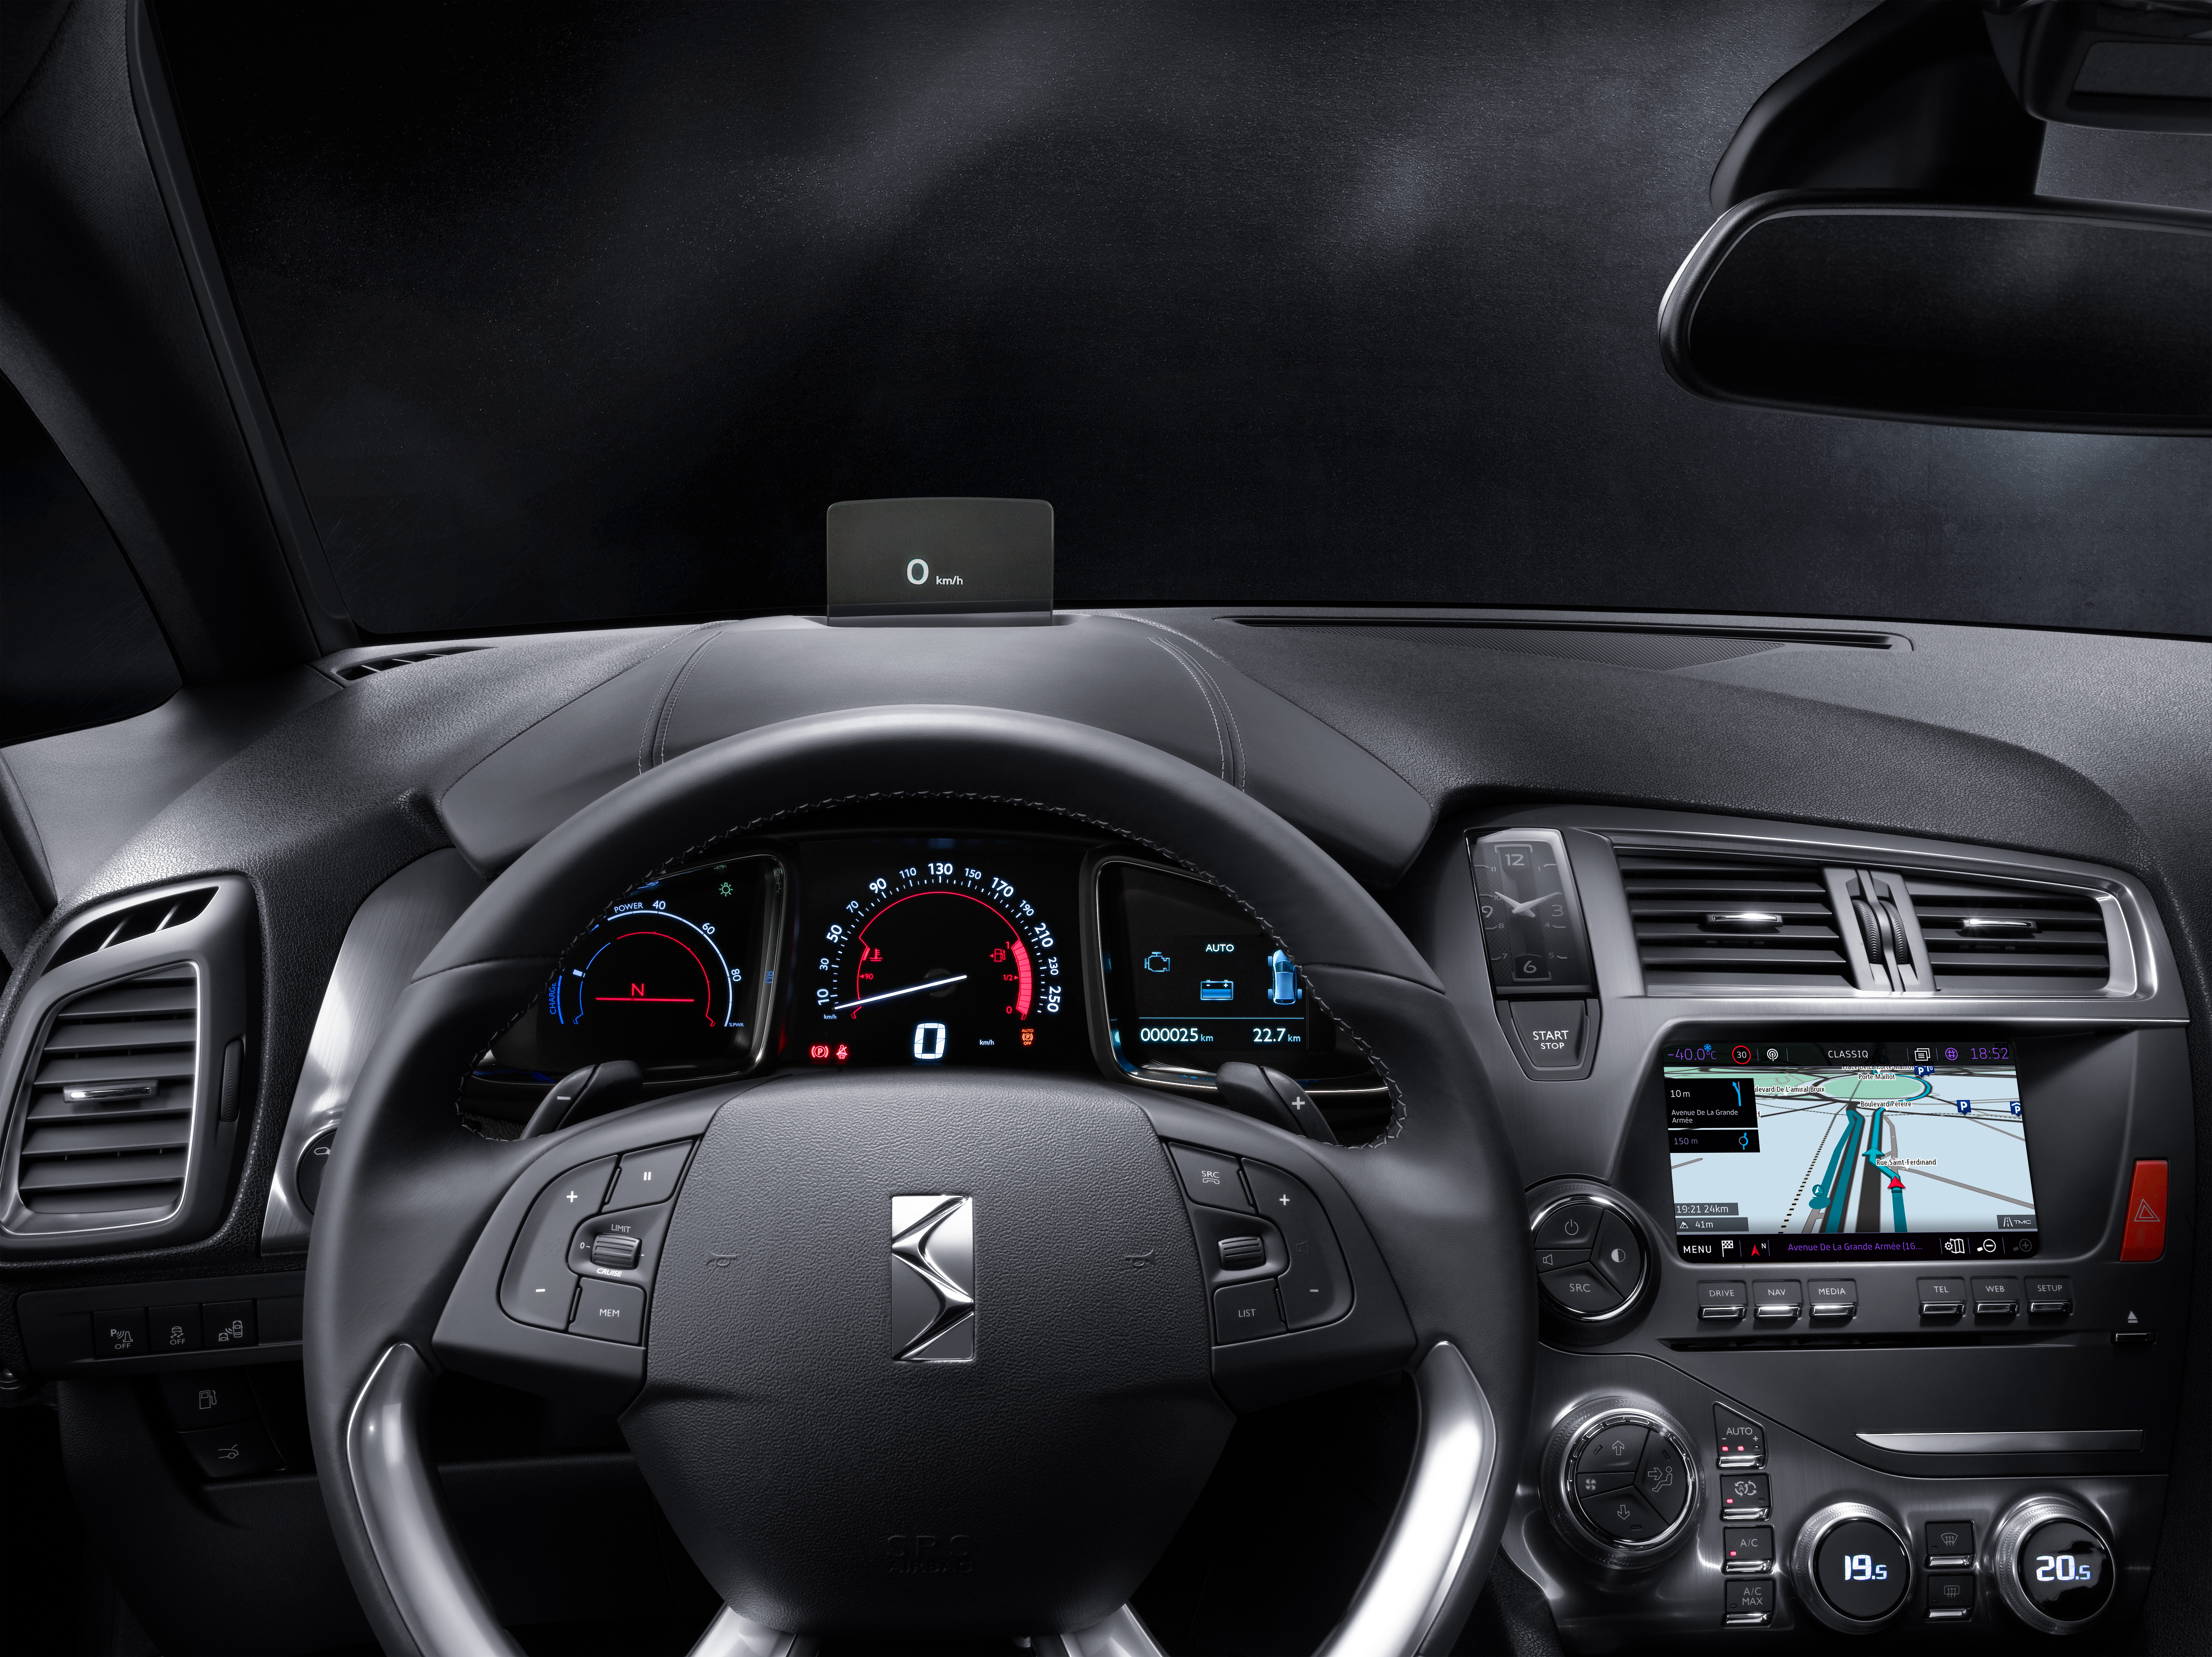 Nuova DS 5 con DS CONNECT NAV